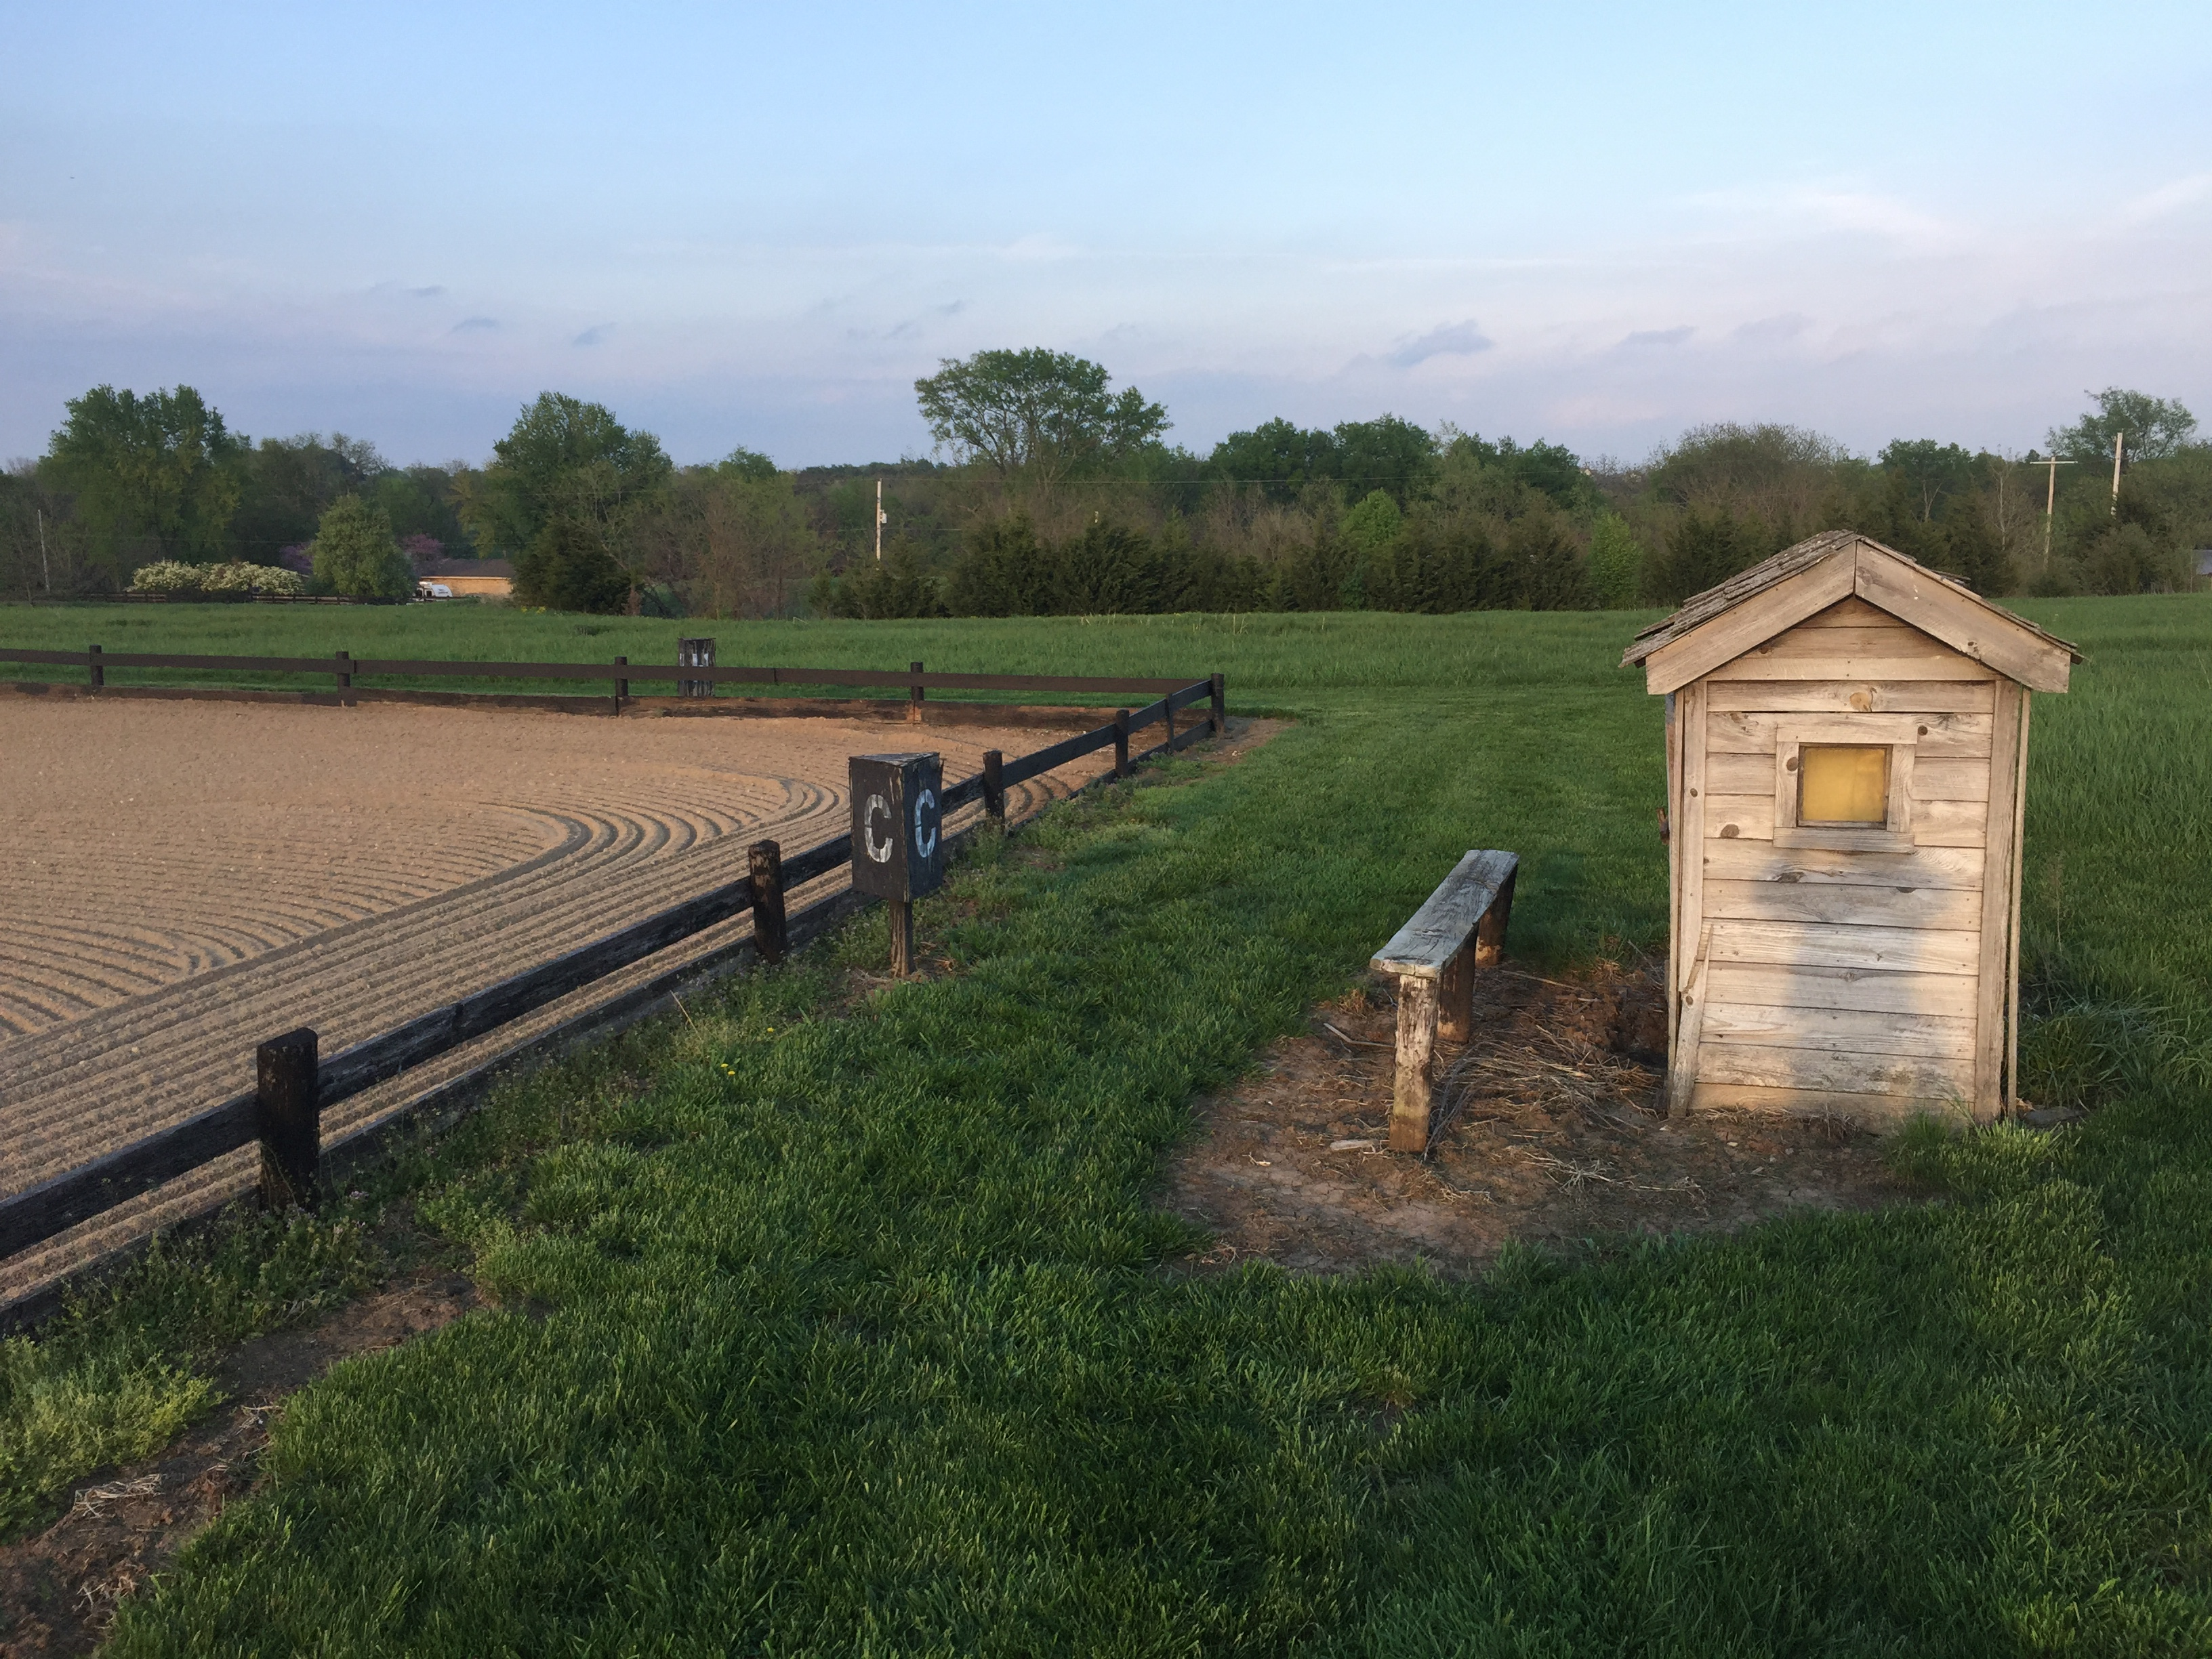 Outdoor riding arena